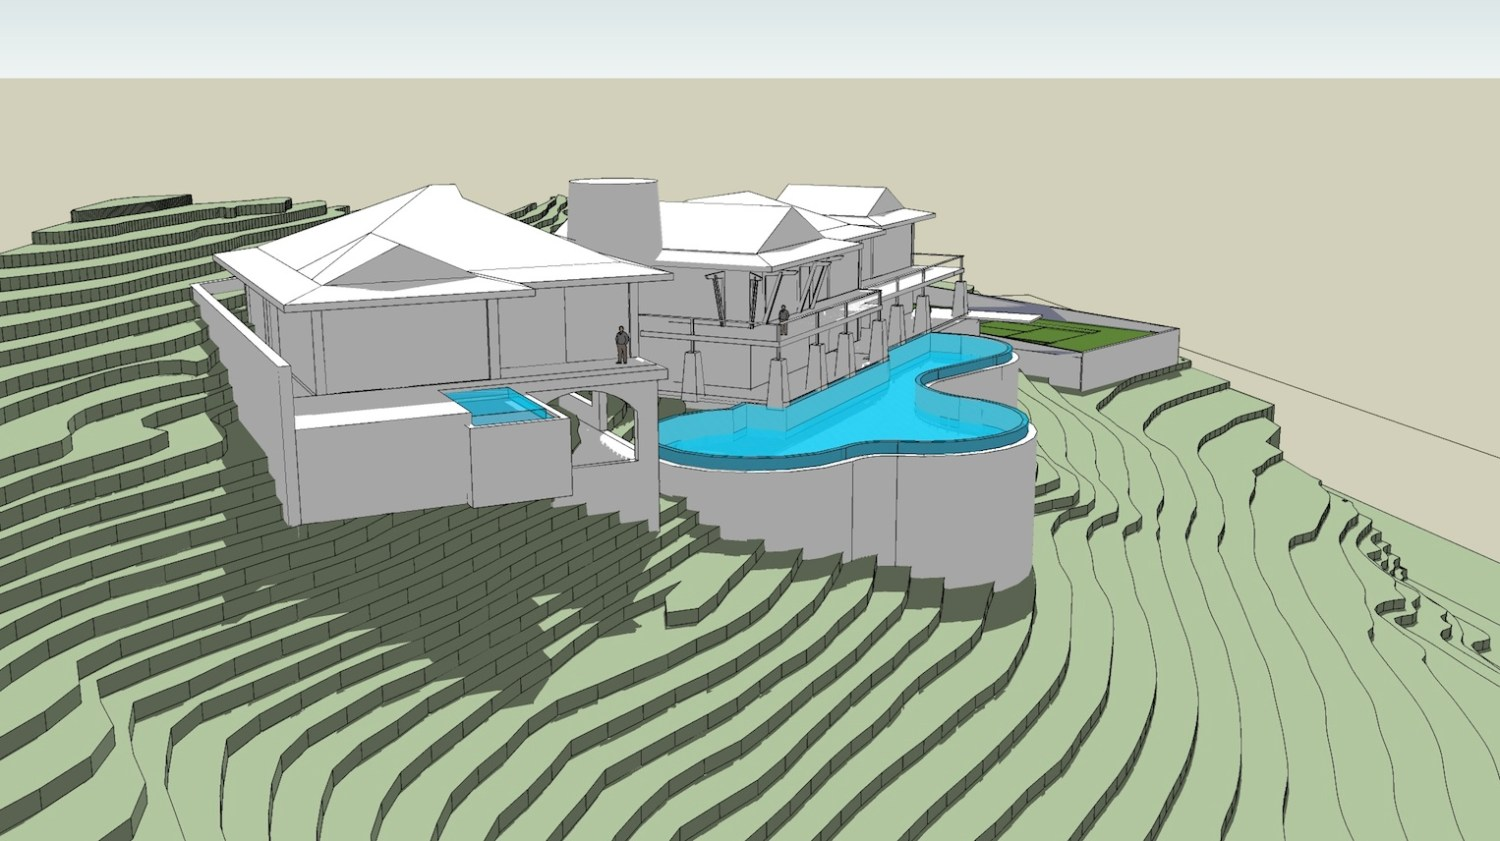 This early stage SketchUp model, bereft of the actual lush vegetation on the site, reveals the dramatic slope and vertical dimensions of the project site.